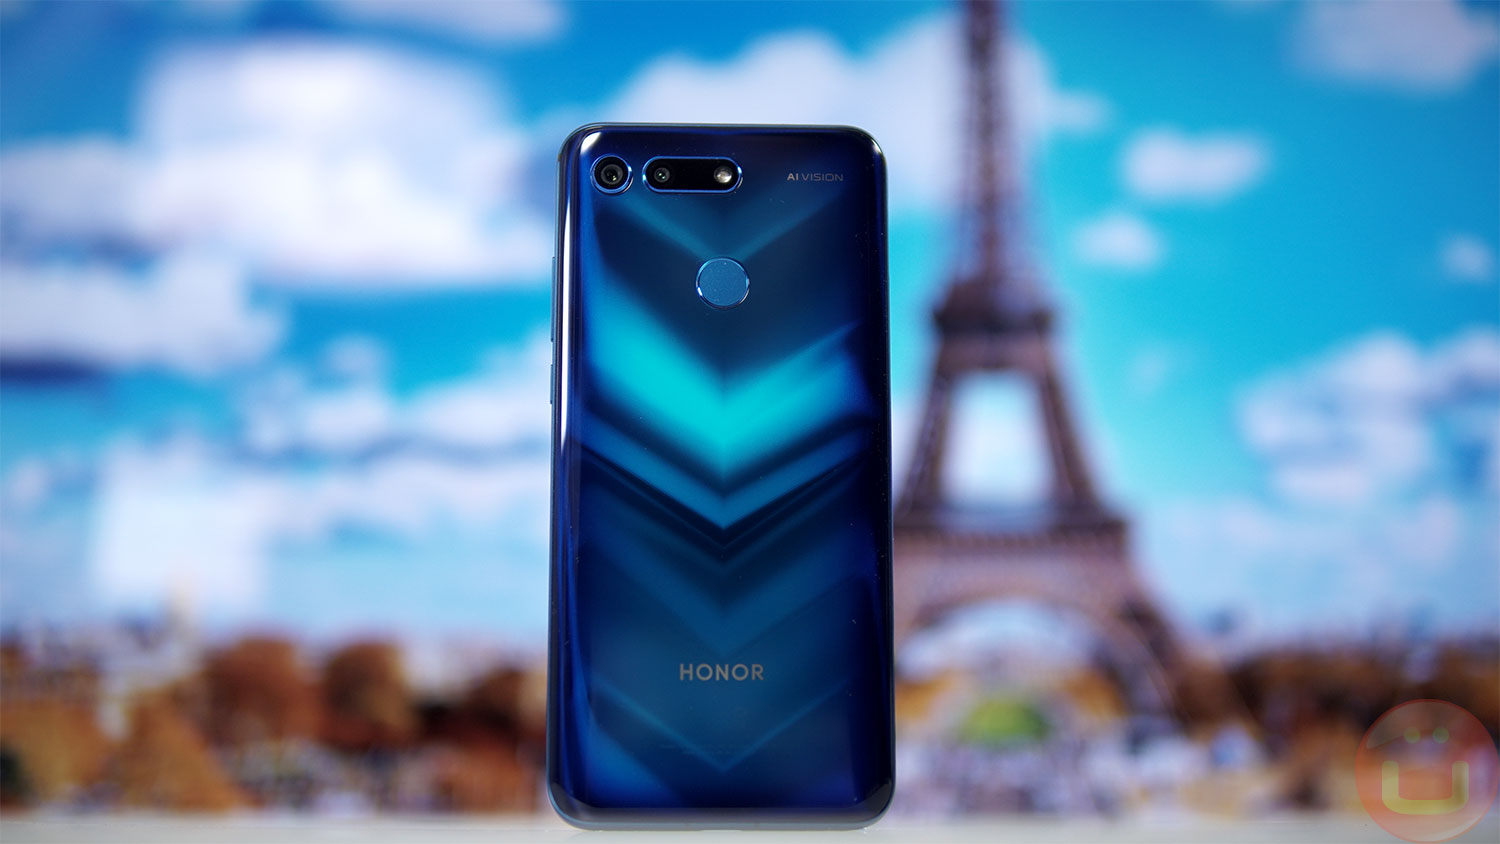 Honor View 20 , Honor View 20 Cam ,Honor View 20 Camera test,Honor View 20 Screen Repair, Honor View 20 Camera, Honor View 20 Unboxing, Honor View 20 Hands-on